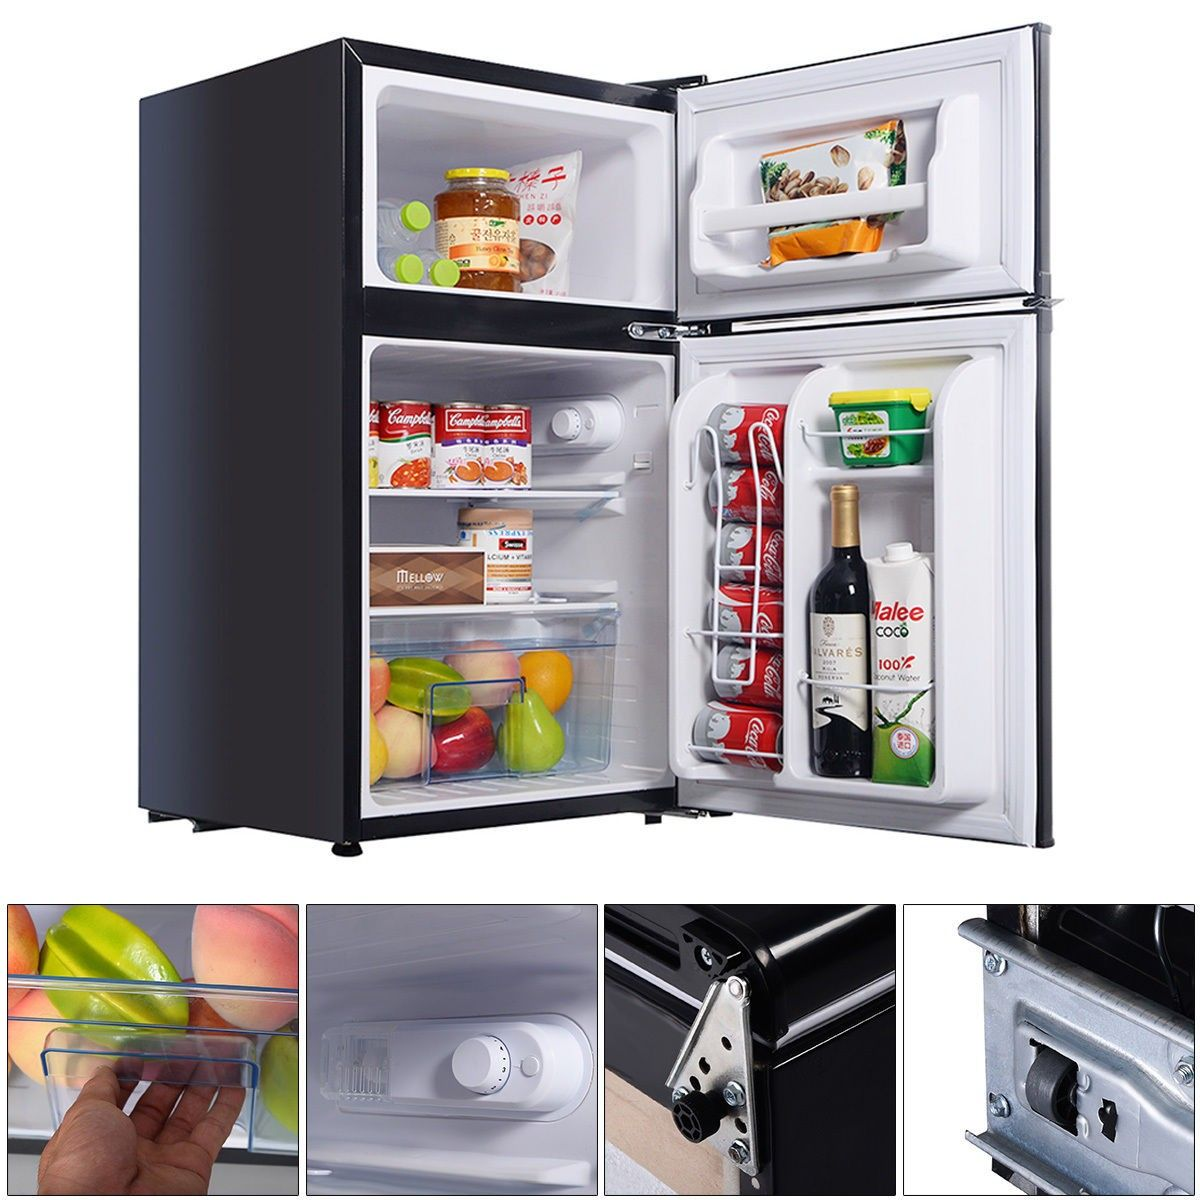 2 Door 3.4 Cu. Ft Compact Refrigerator Freezer CFC Free Furniture ...